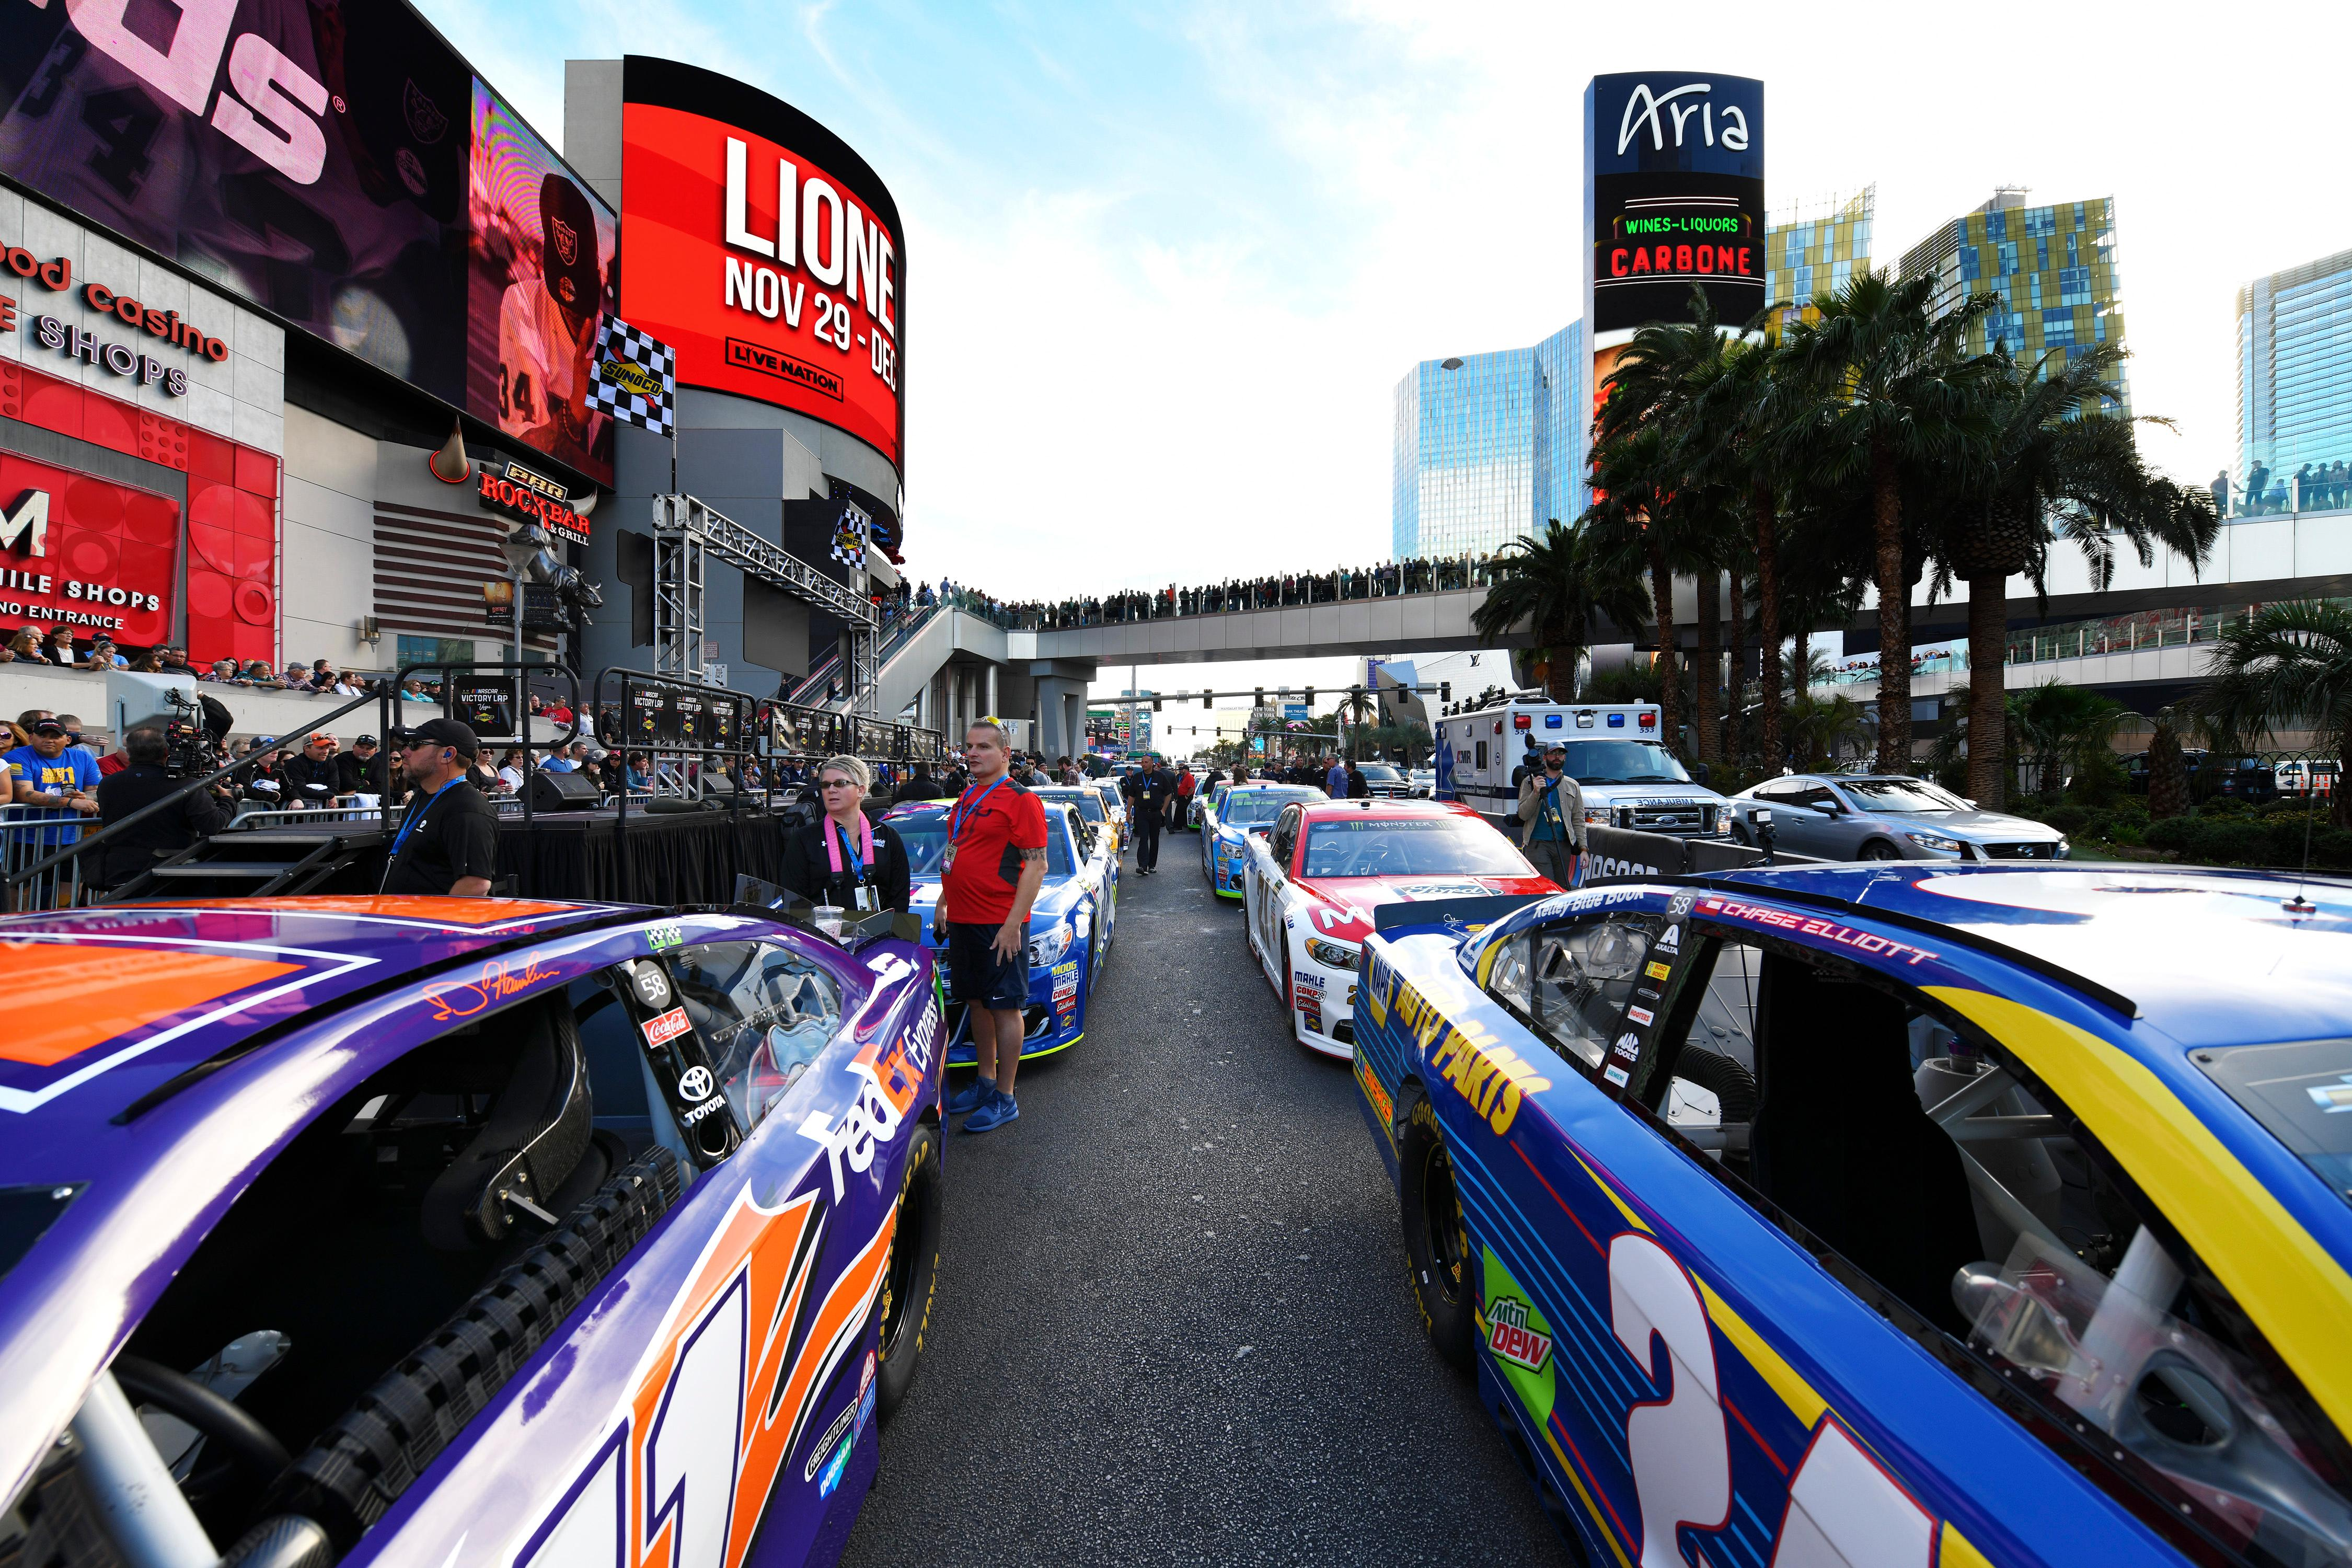 Stock cars are lined up outside Planet Hollywood and the Miracle Mile Shops during the NASCAR Victory Lap on the Las Vegas Strip being held as part of Champions Week Wednesday, November 29, 2017. CREDIT: Sam Morris/Las Vegas News Bureau